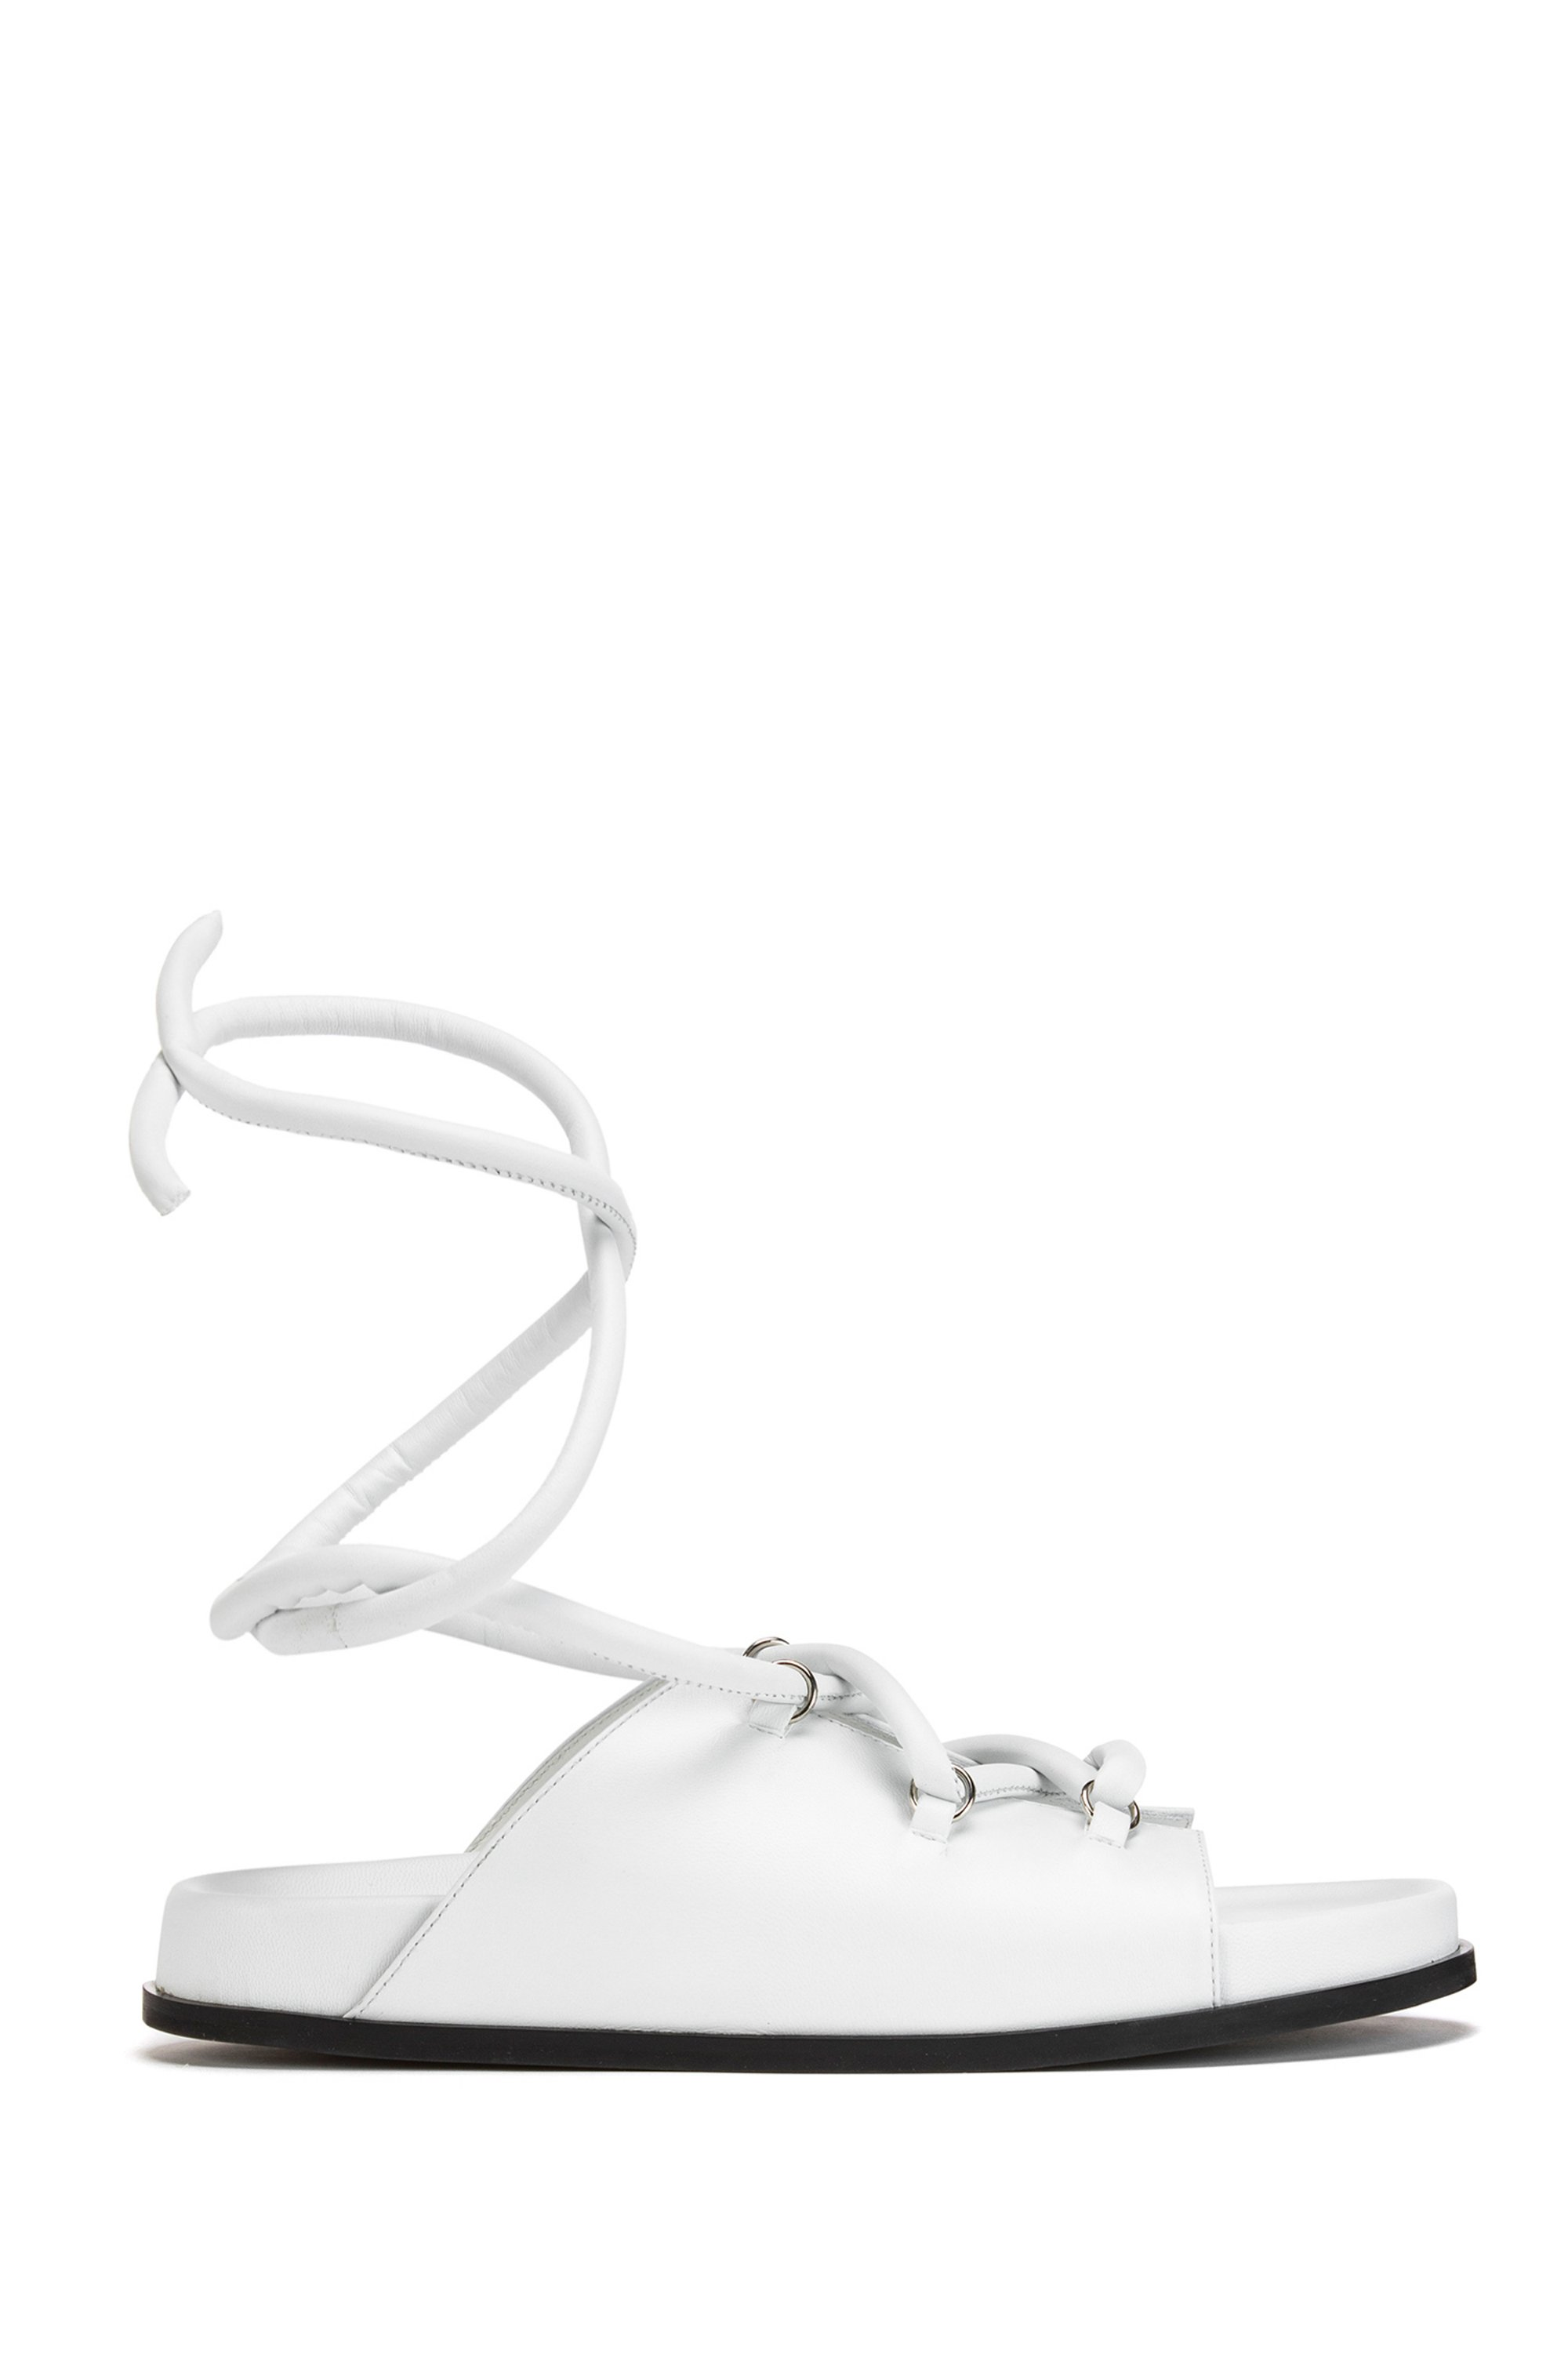 Nappa-leather sandals with ankle ties, White